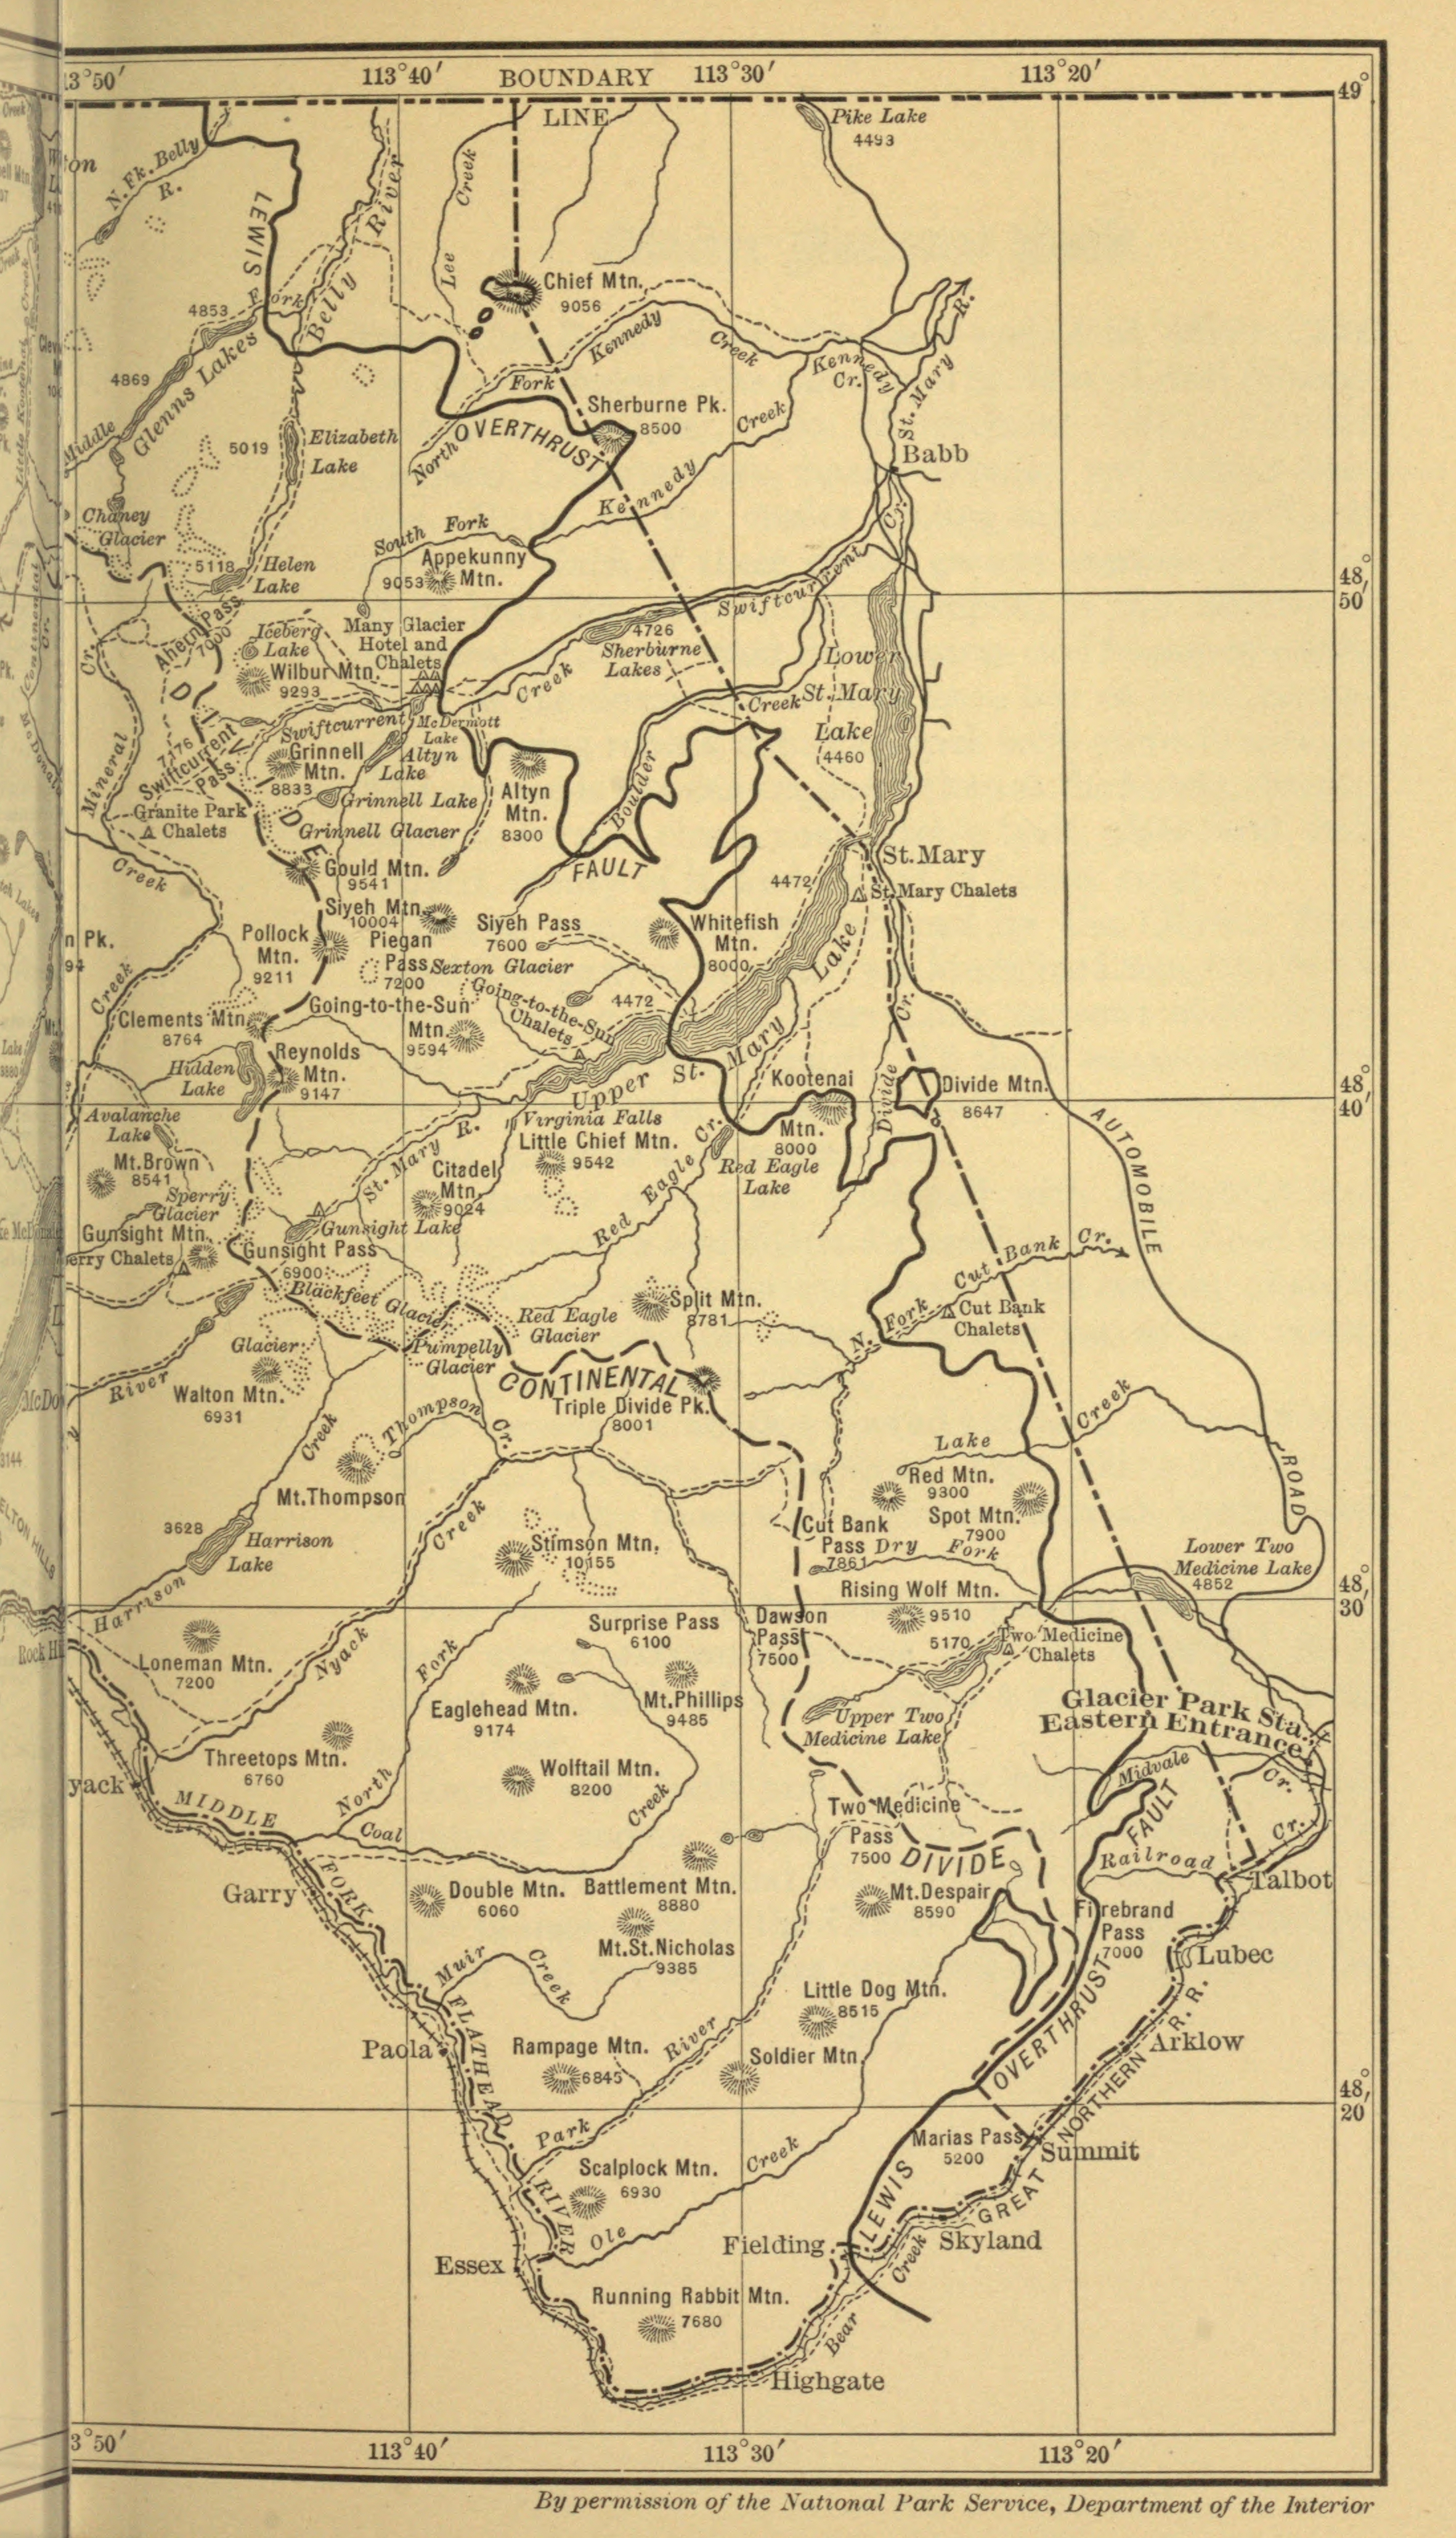 The Project Gutenberg eBook of Your National Parks, by Enos A. Mills.